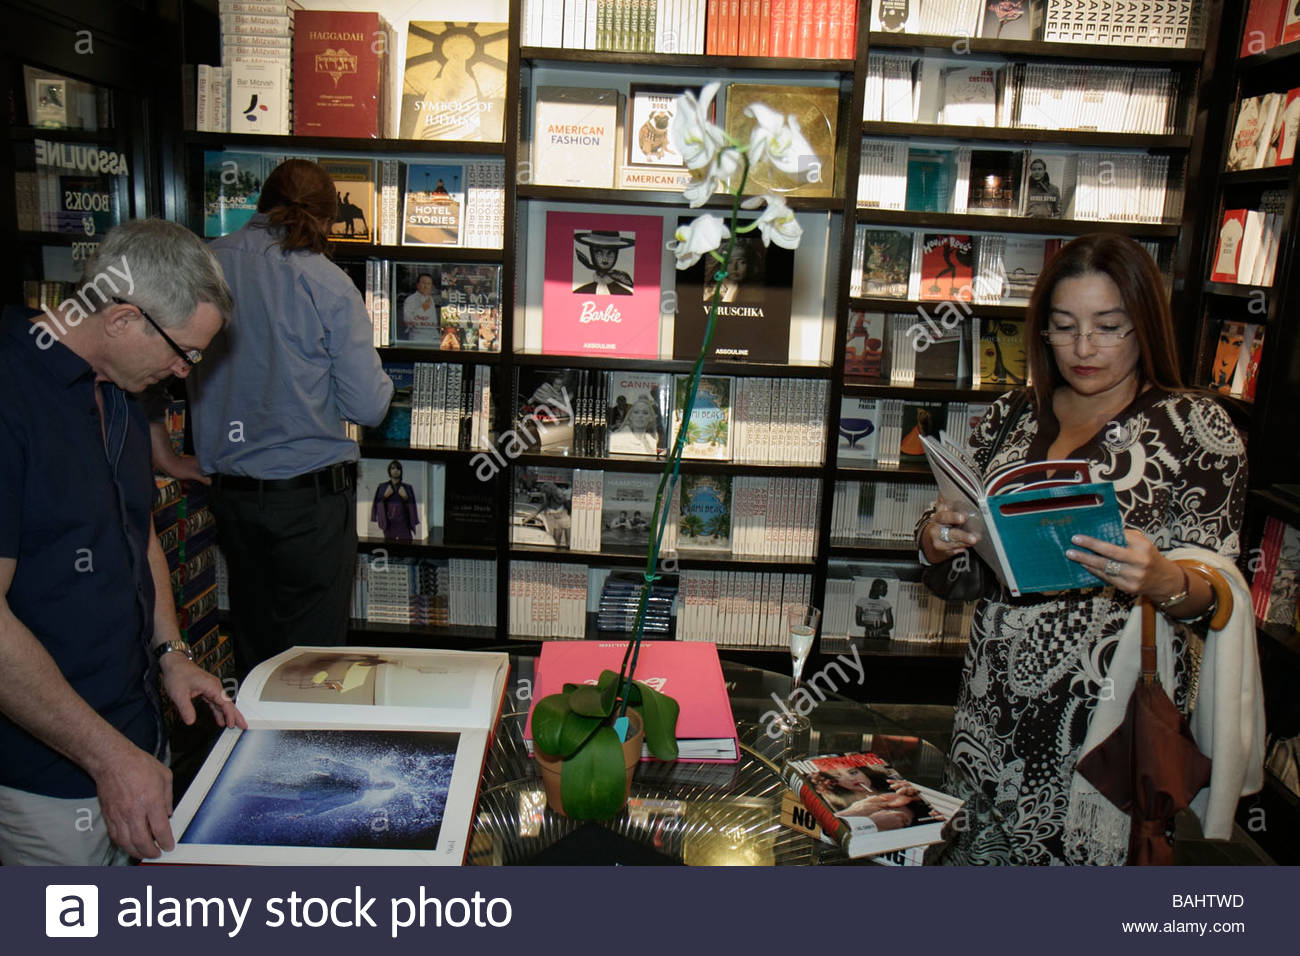 Image result for lincoln road bookstore